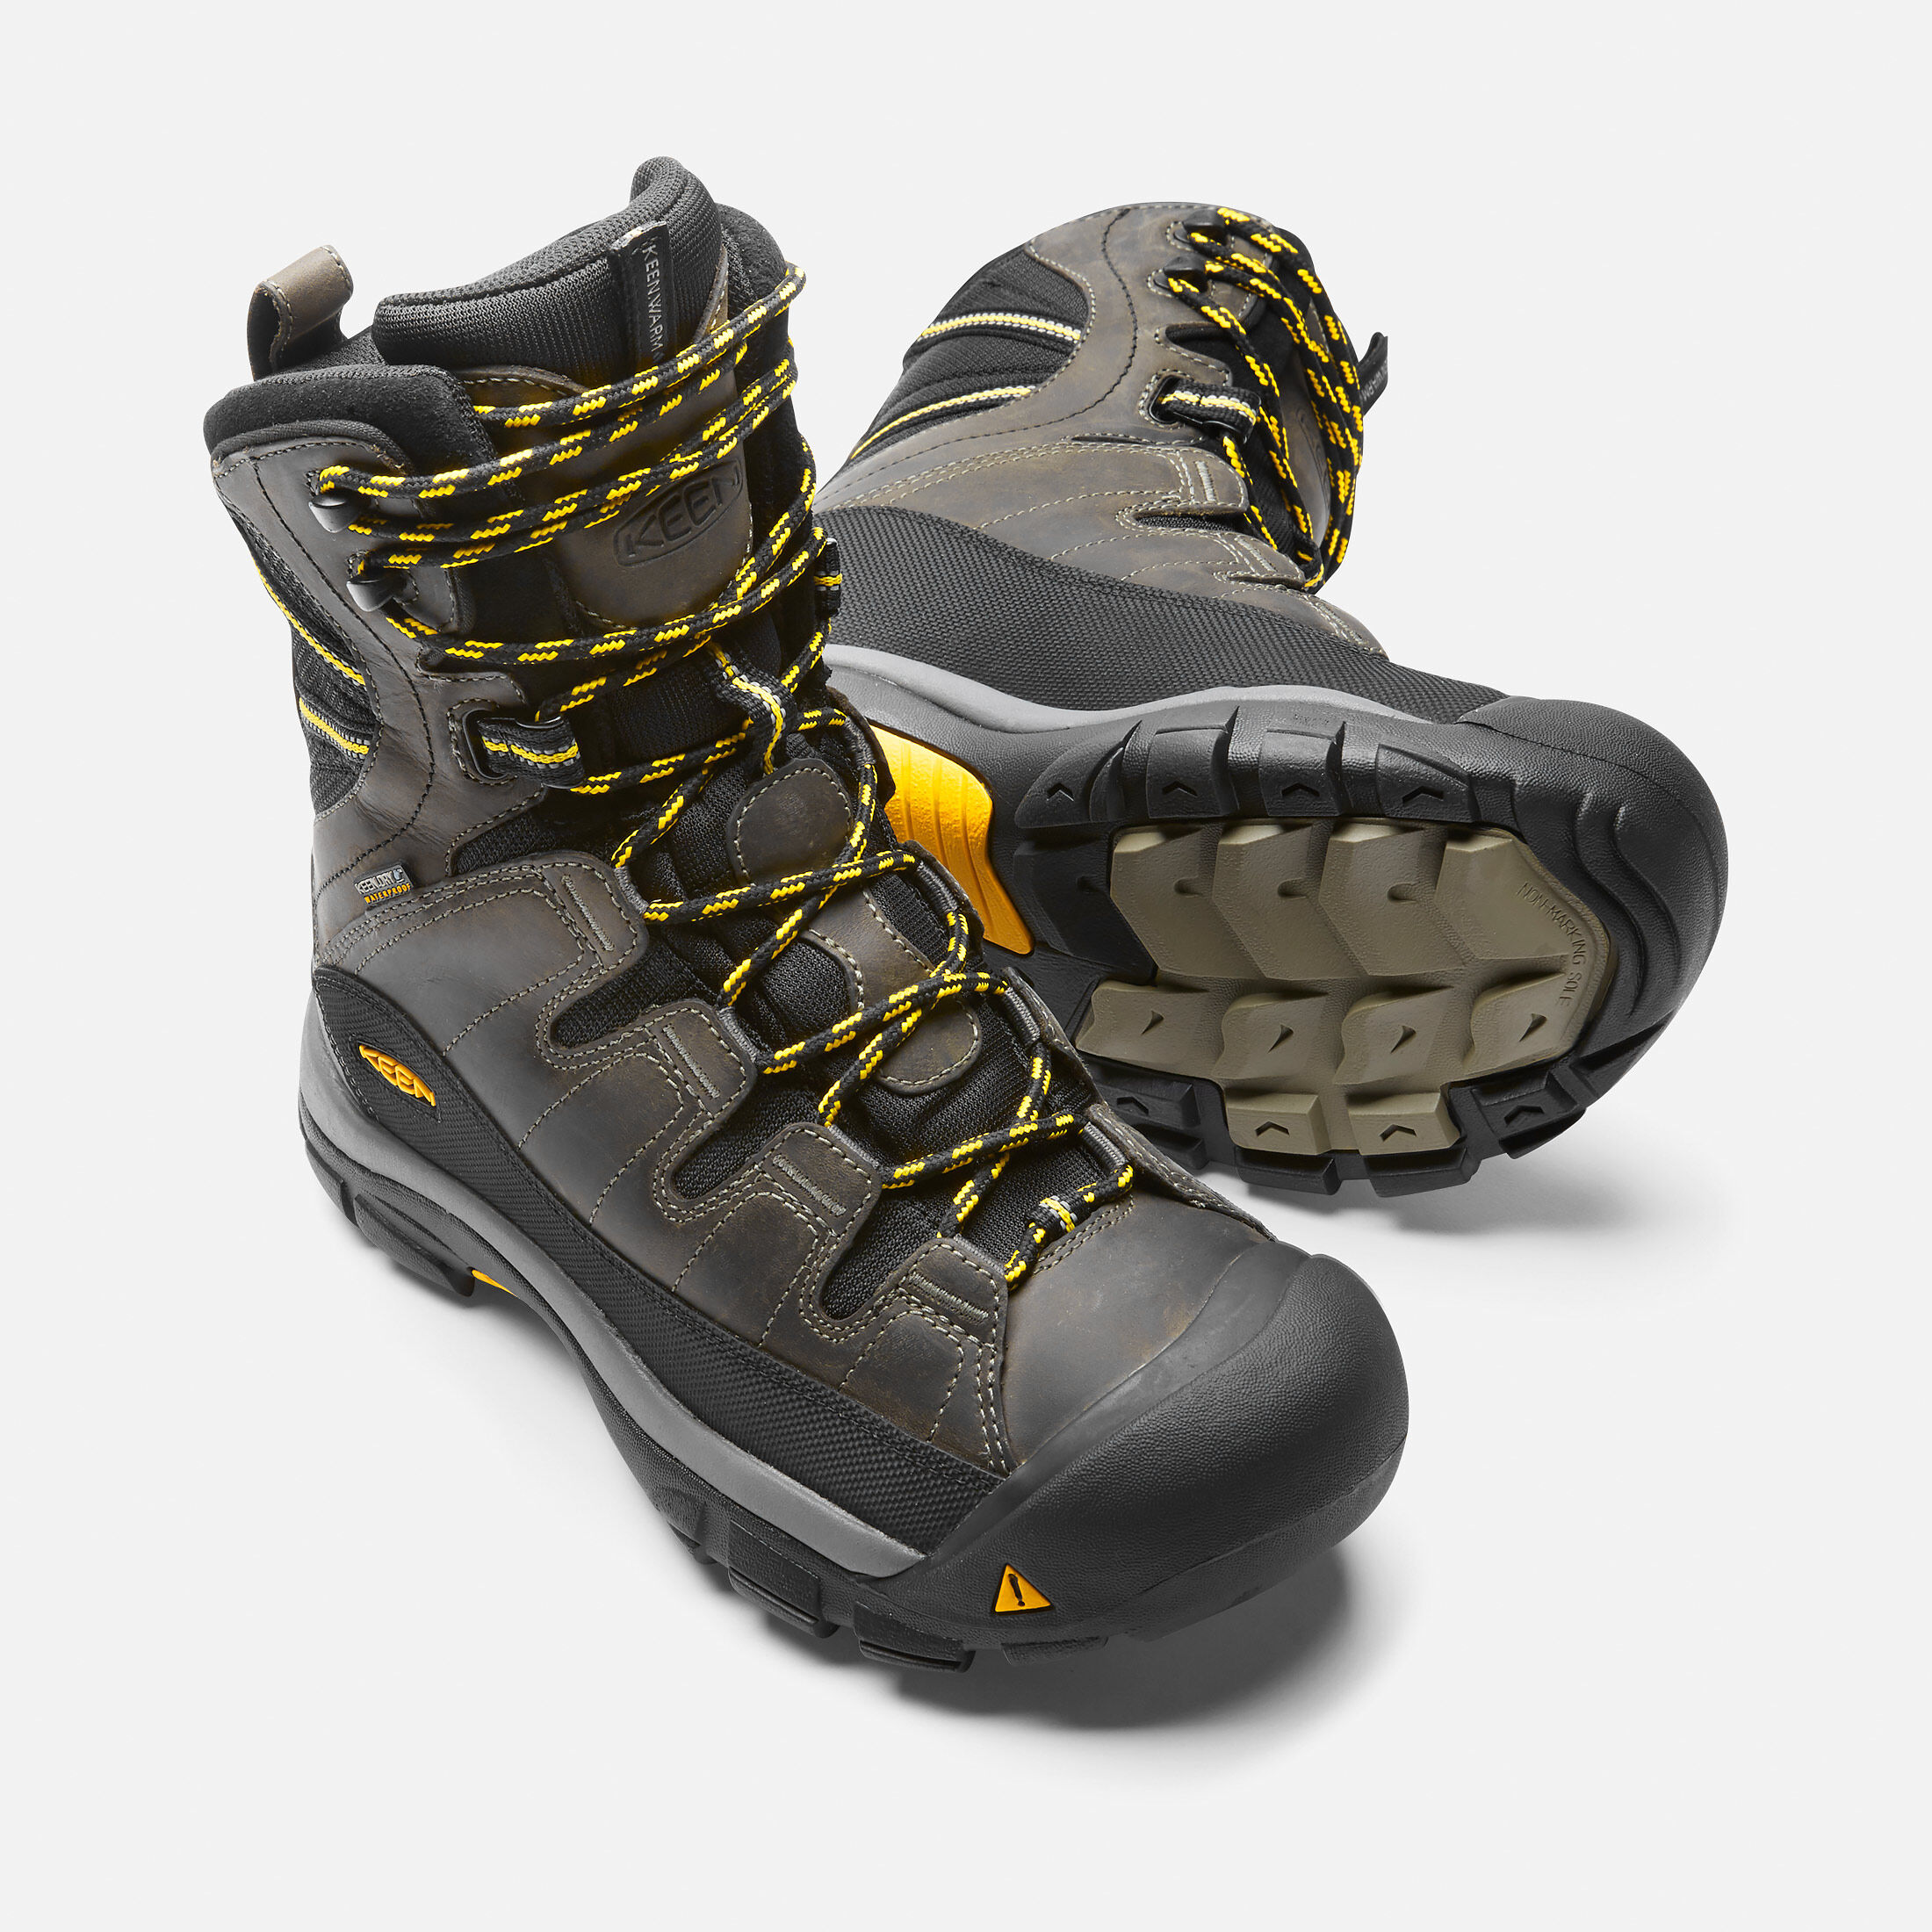 78d1c9bf0d8 Summit Safety Shoes - Shoes For Yourstyles